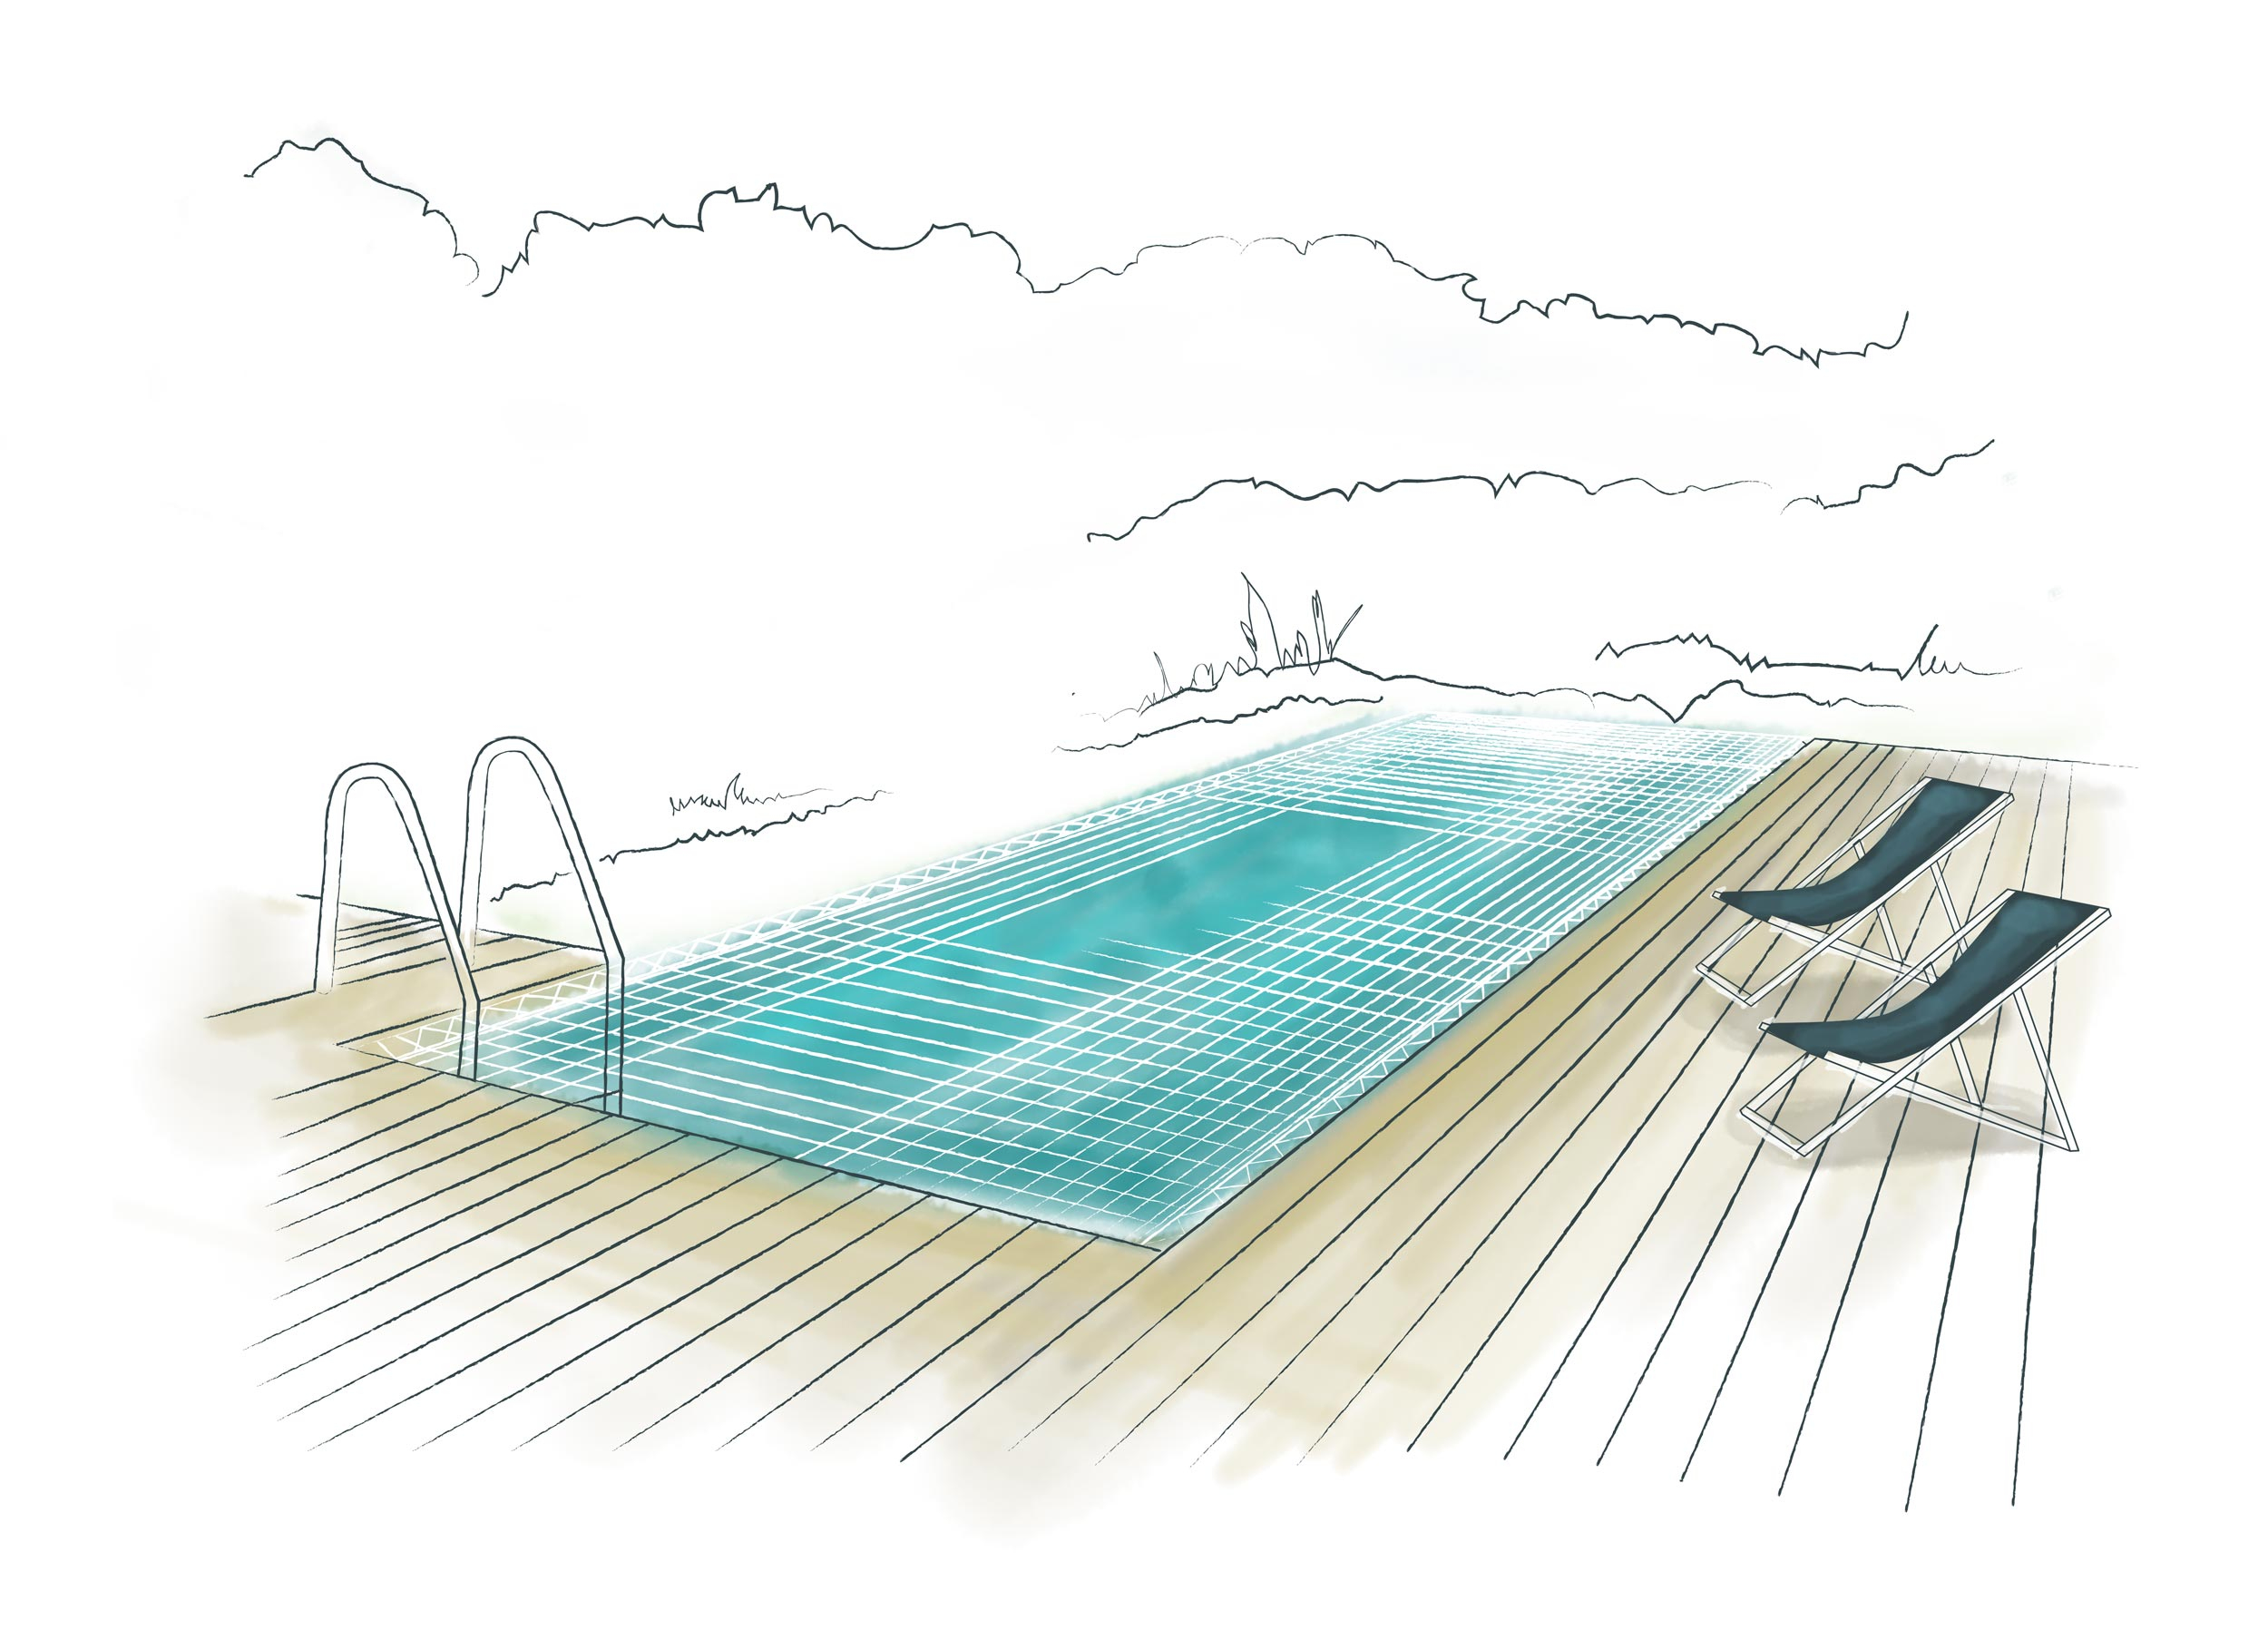 Filet De Protection Sur Mesure Pour Piscine - Nets&co dedans Filet Protection Piscine